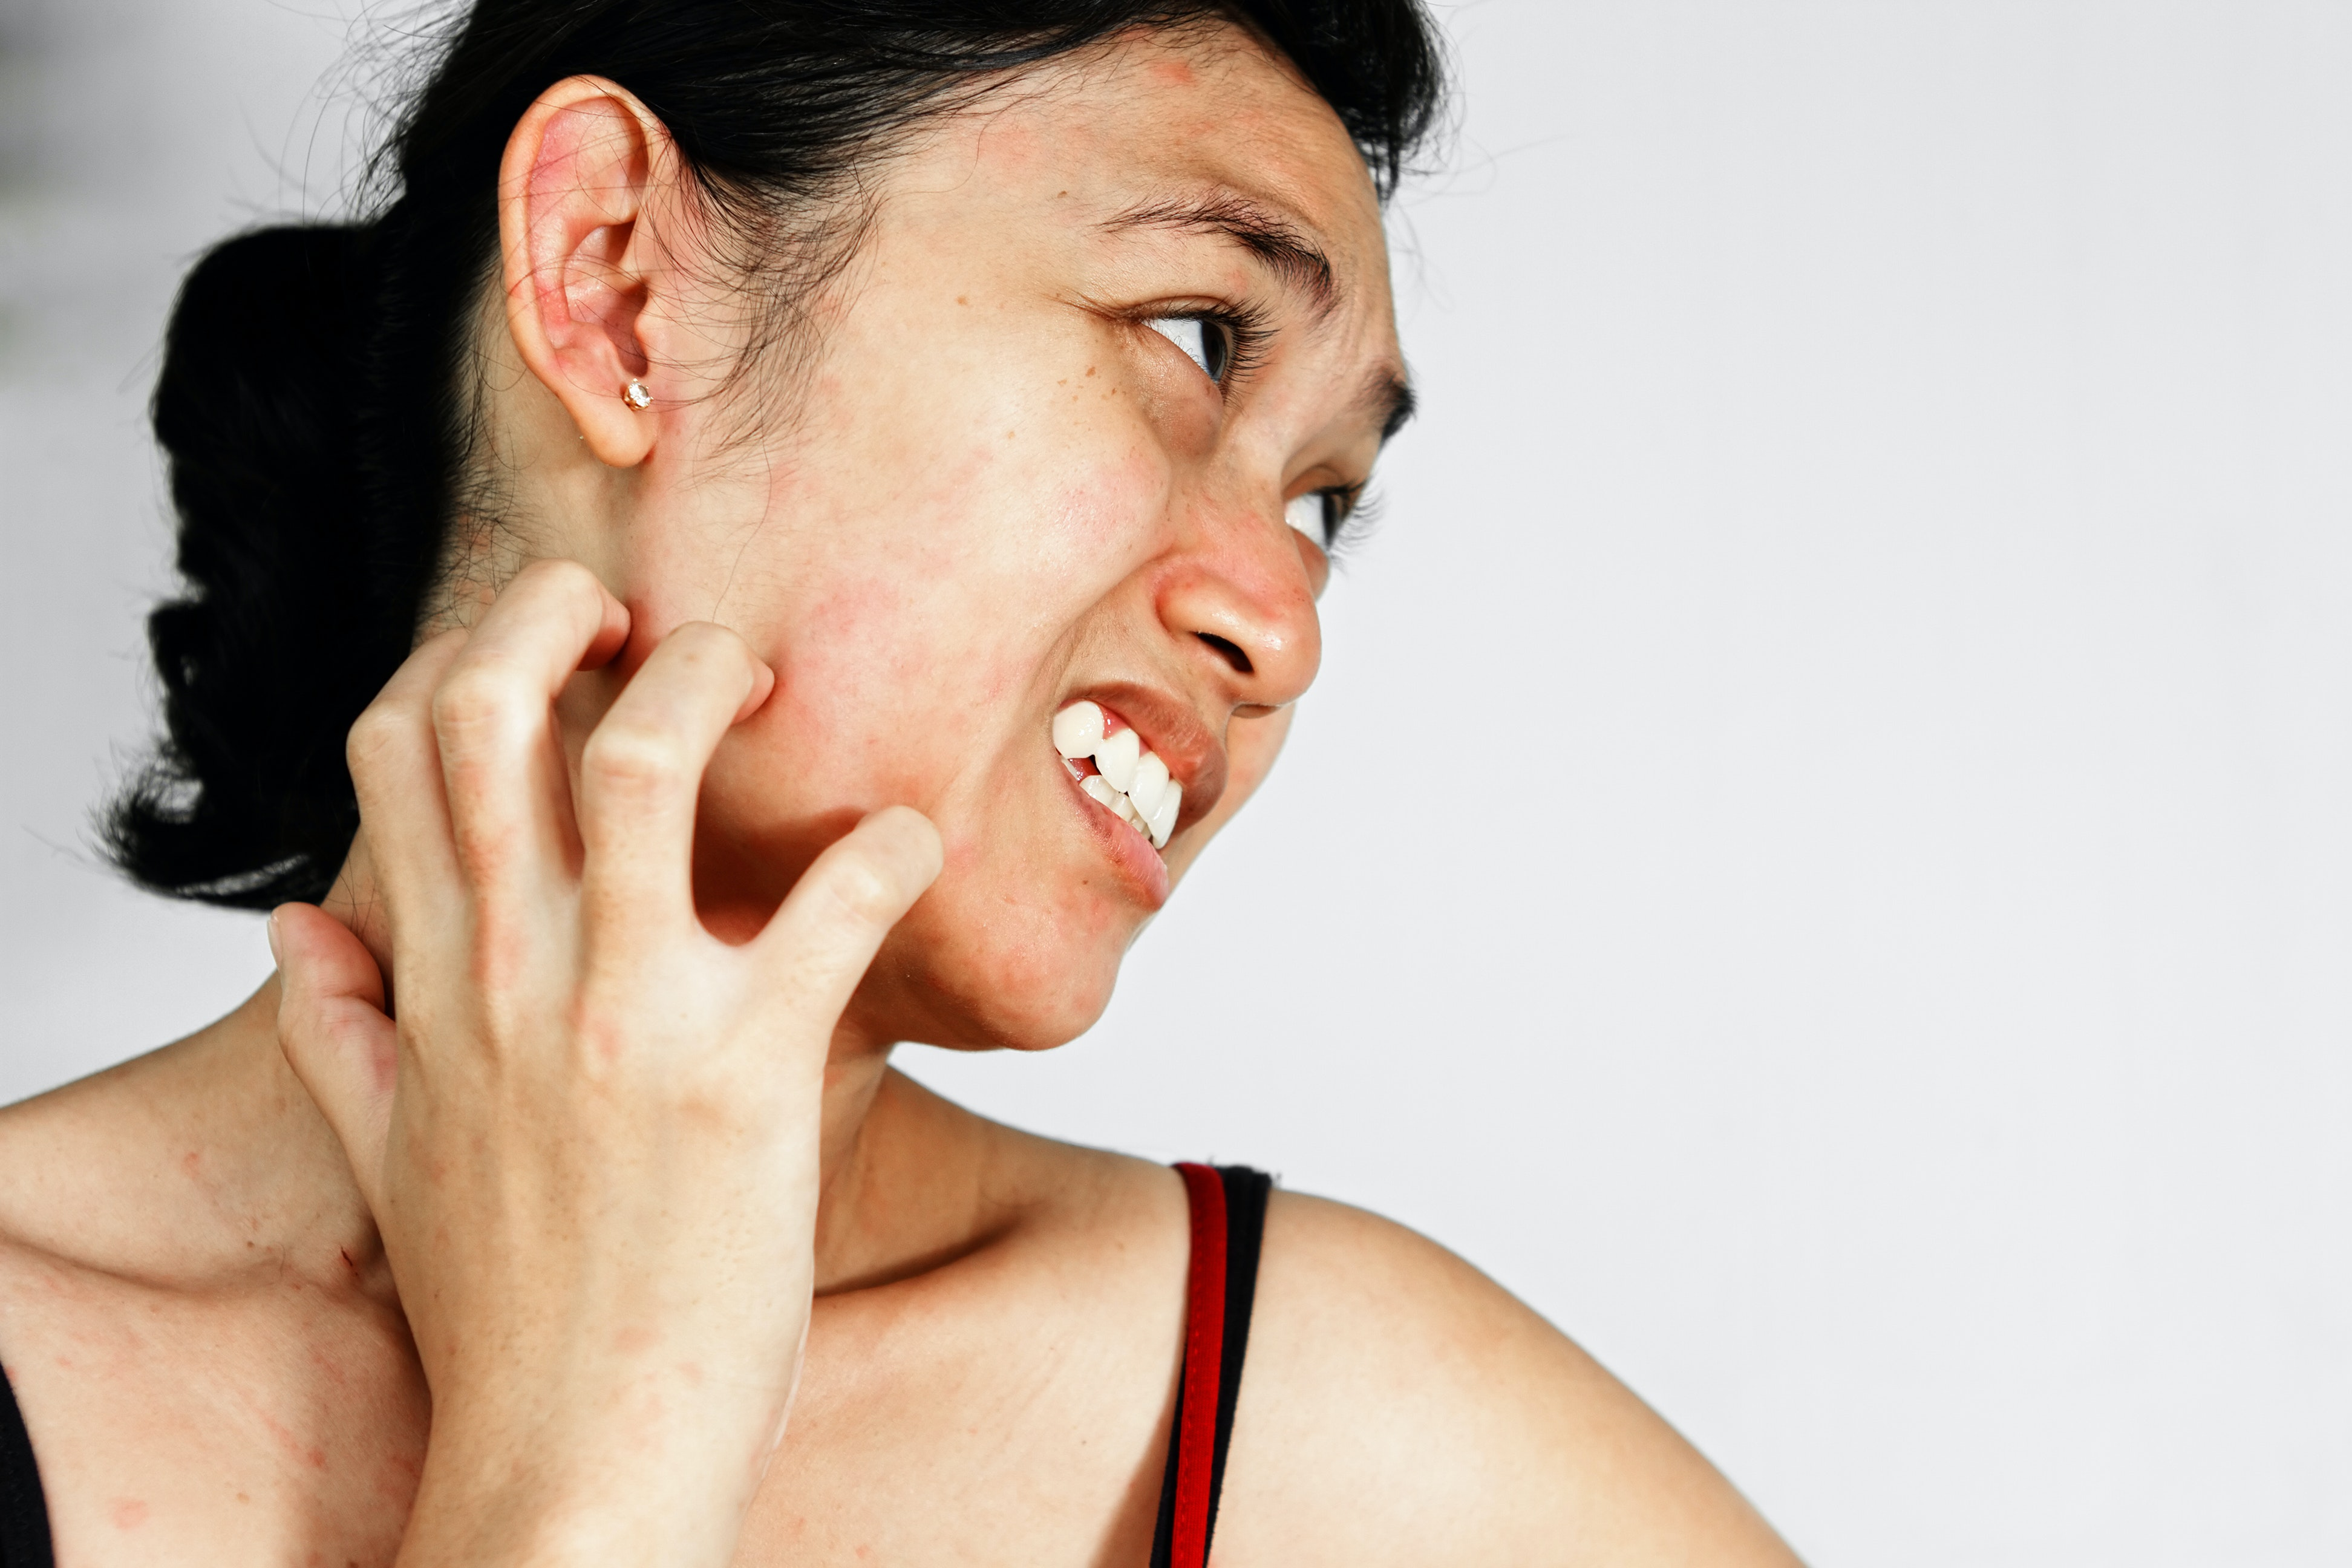 Signs: why cheeks and ears burn